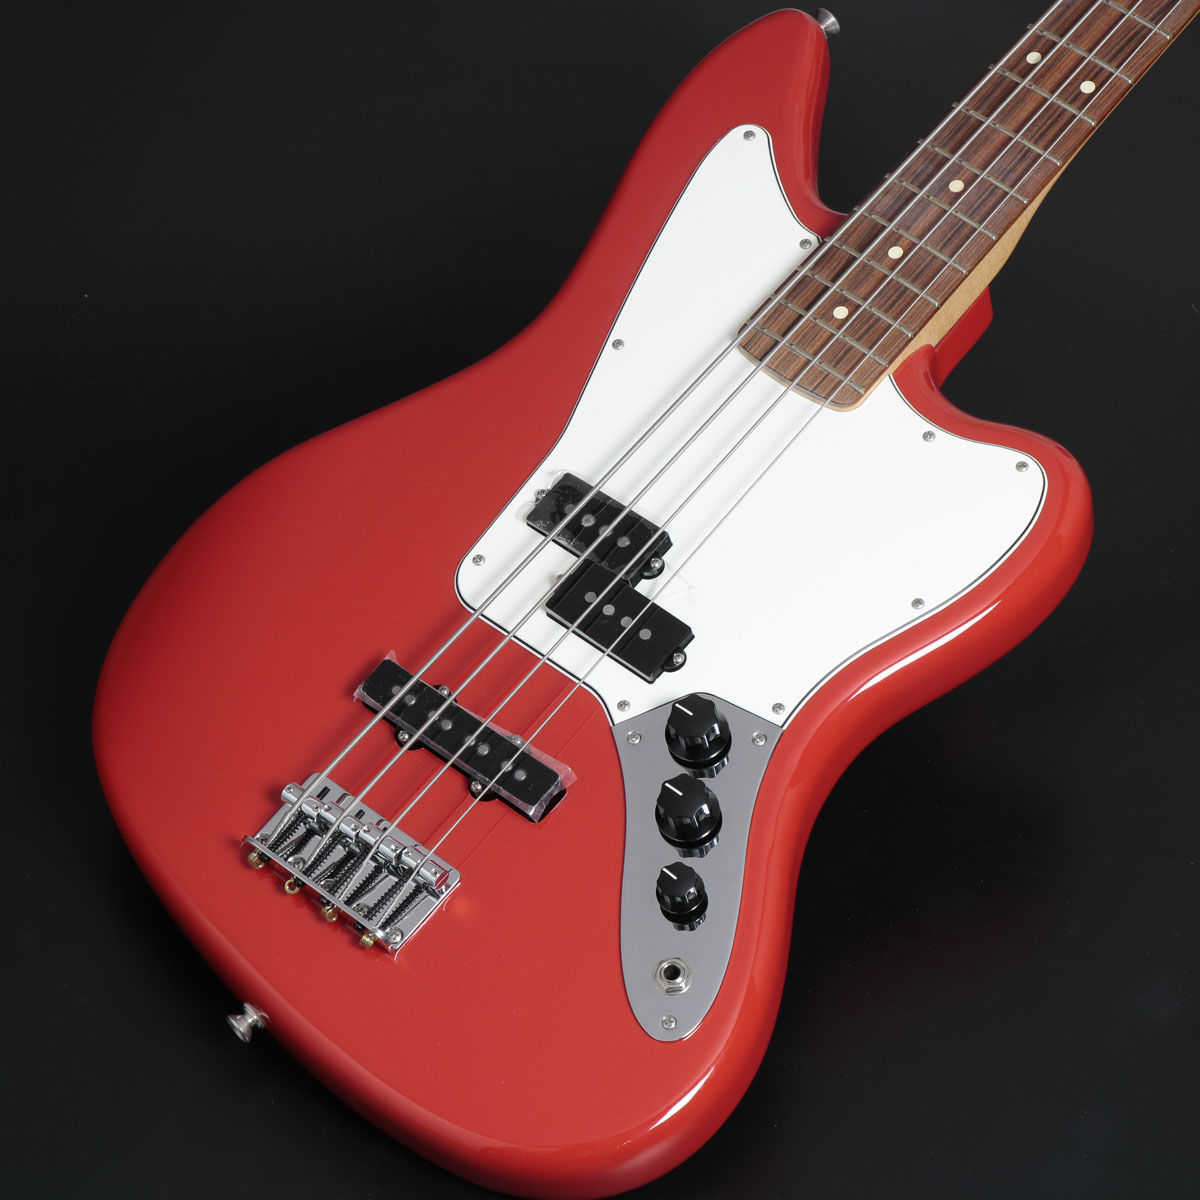 Fender/ Player Series Fender Jaguar Red Bass Sonic Pau Red/ Pau Ferro Fingerboard【御茶ノ水本店】, ブランド&着物館アクアン京や:7b189adb --- sunward.msk.ru